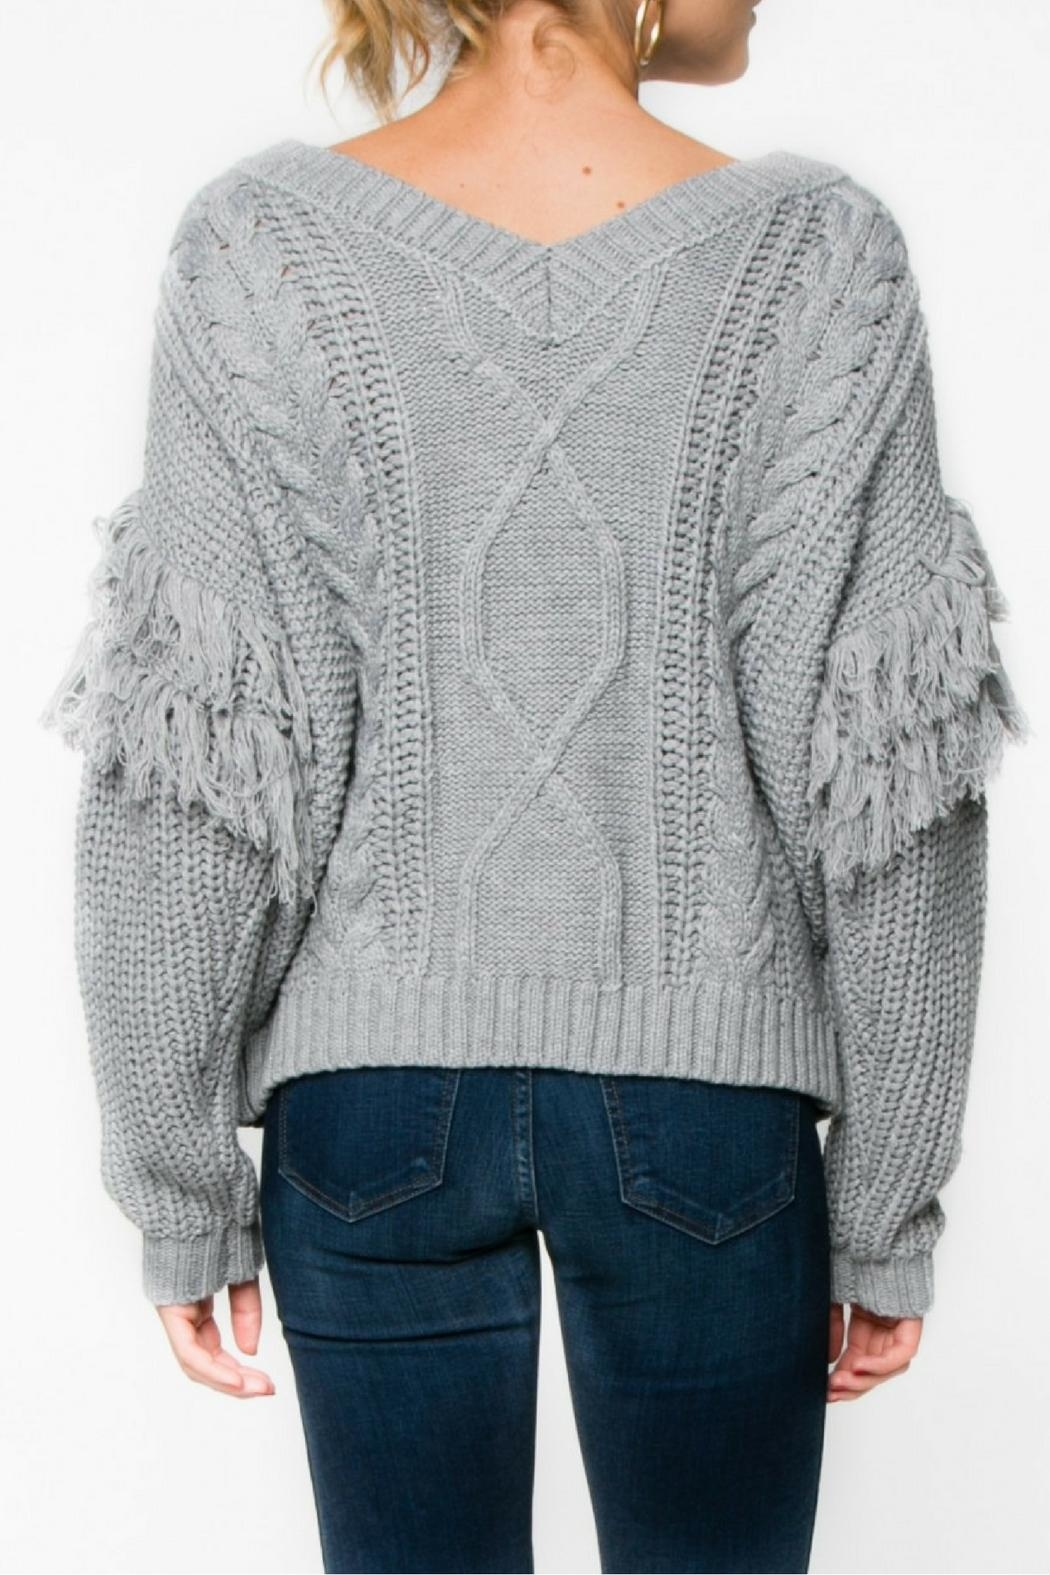 Everly Gray Fringe Sweater - Side Cropped Image